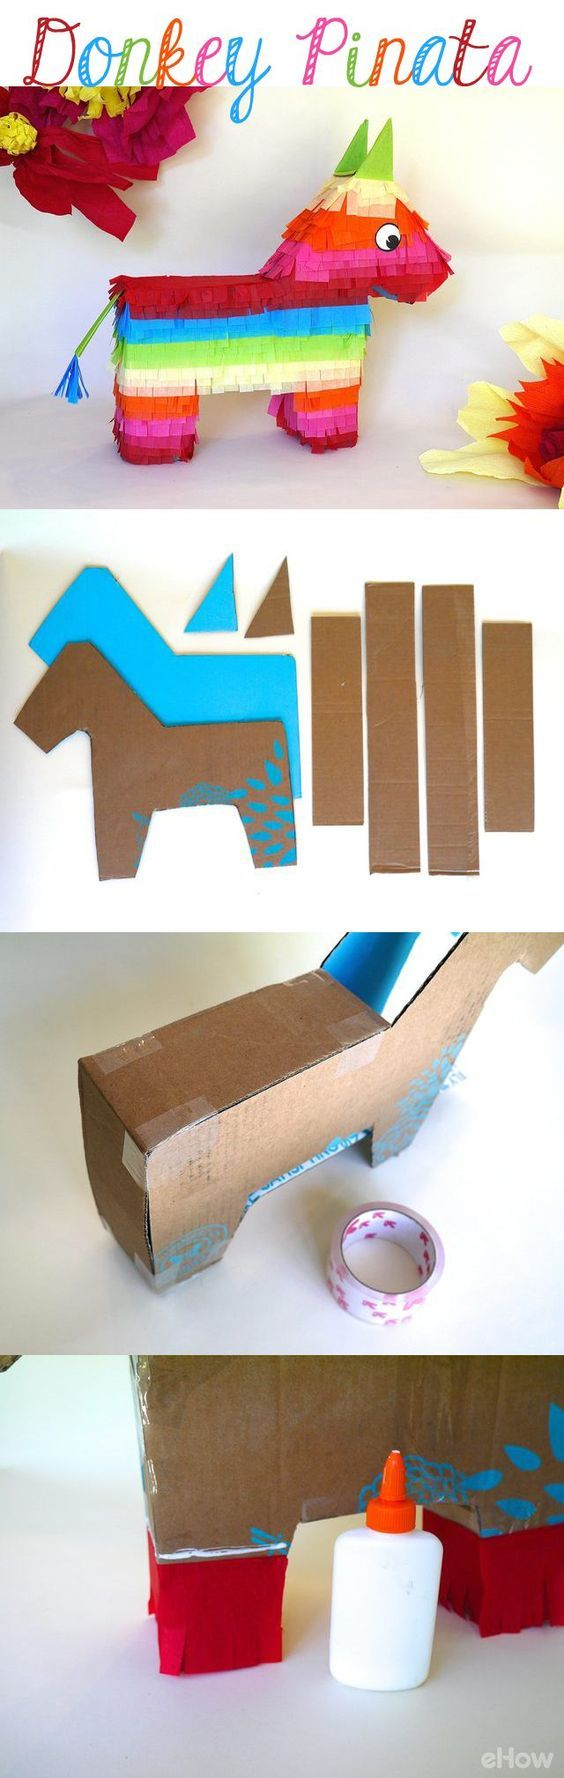 DIY your own traditional donkey pinata for any summer party and, obviously, Cinco de Mayo! So easy to make once you check out this tutorial! Get the kids involved for a fun afternoon craft: http://www.ehow.com/how_5022697_make-donkey-pinata.html?utm_source=pinterest.com&utm_medium=referral&utm_content=inline&utm_campaign=fanpage: